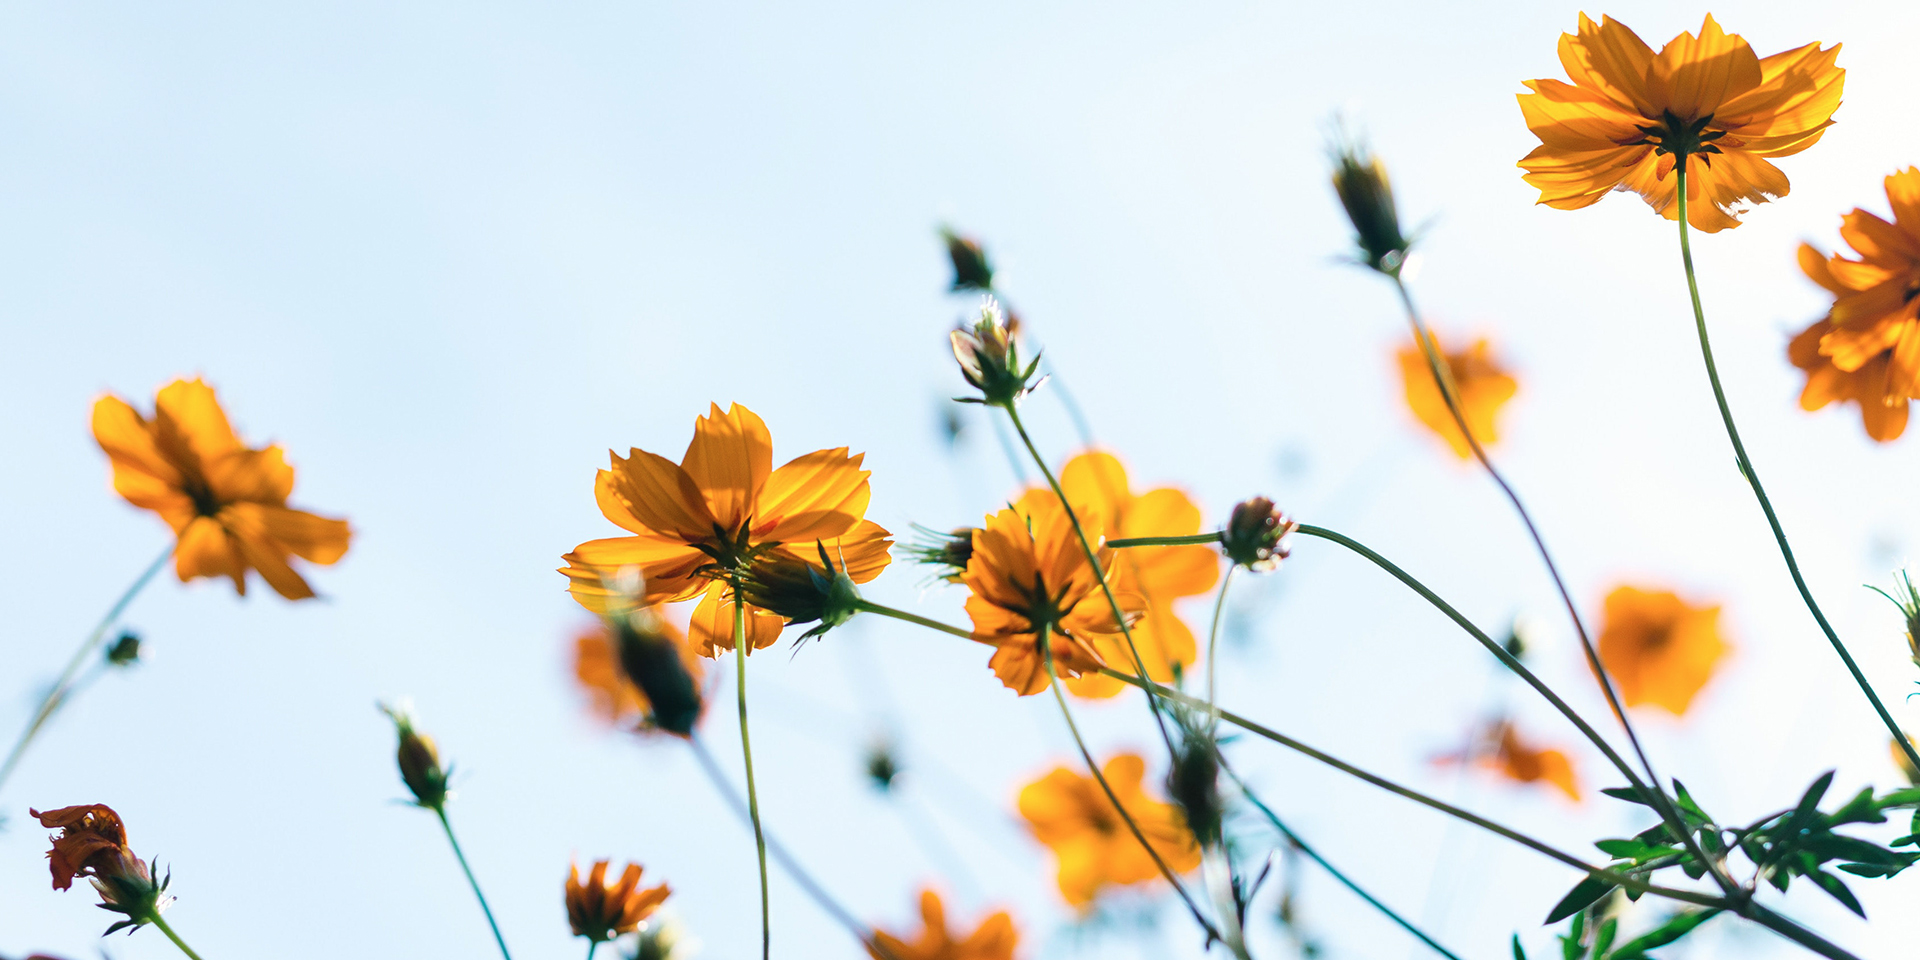 yellow-flowers-looking-up-to-a-blue-sky